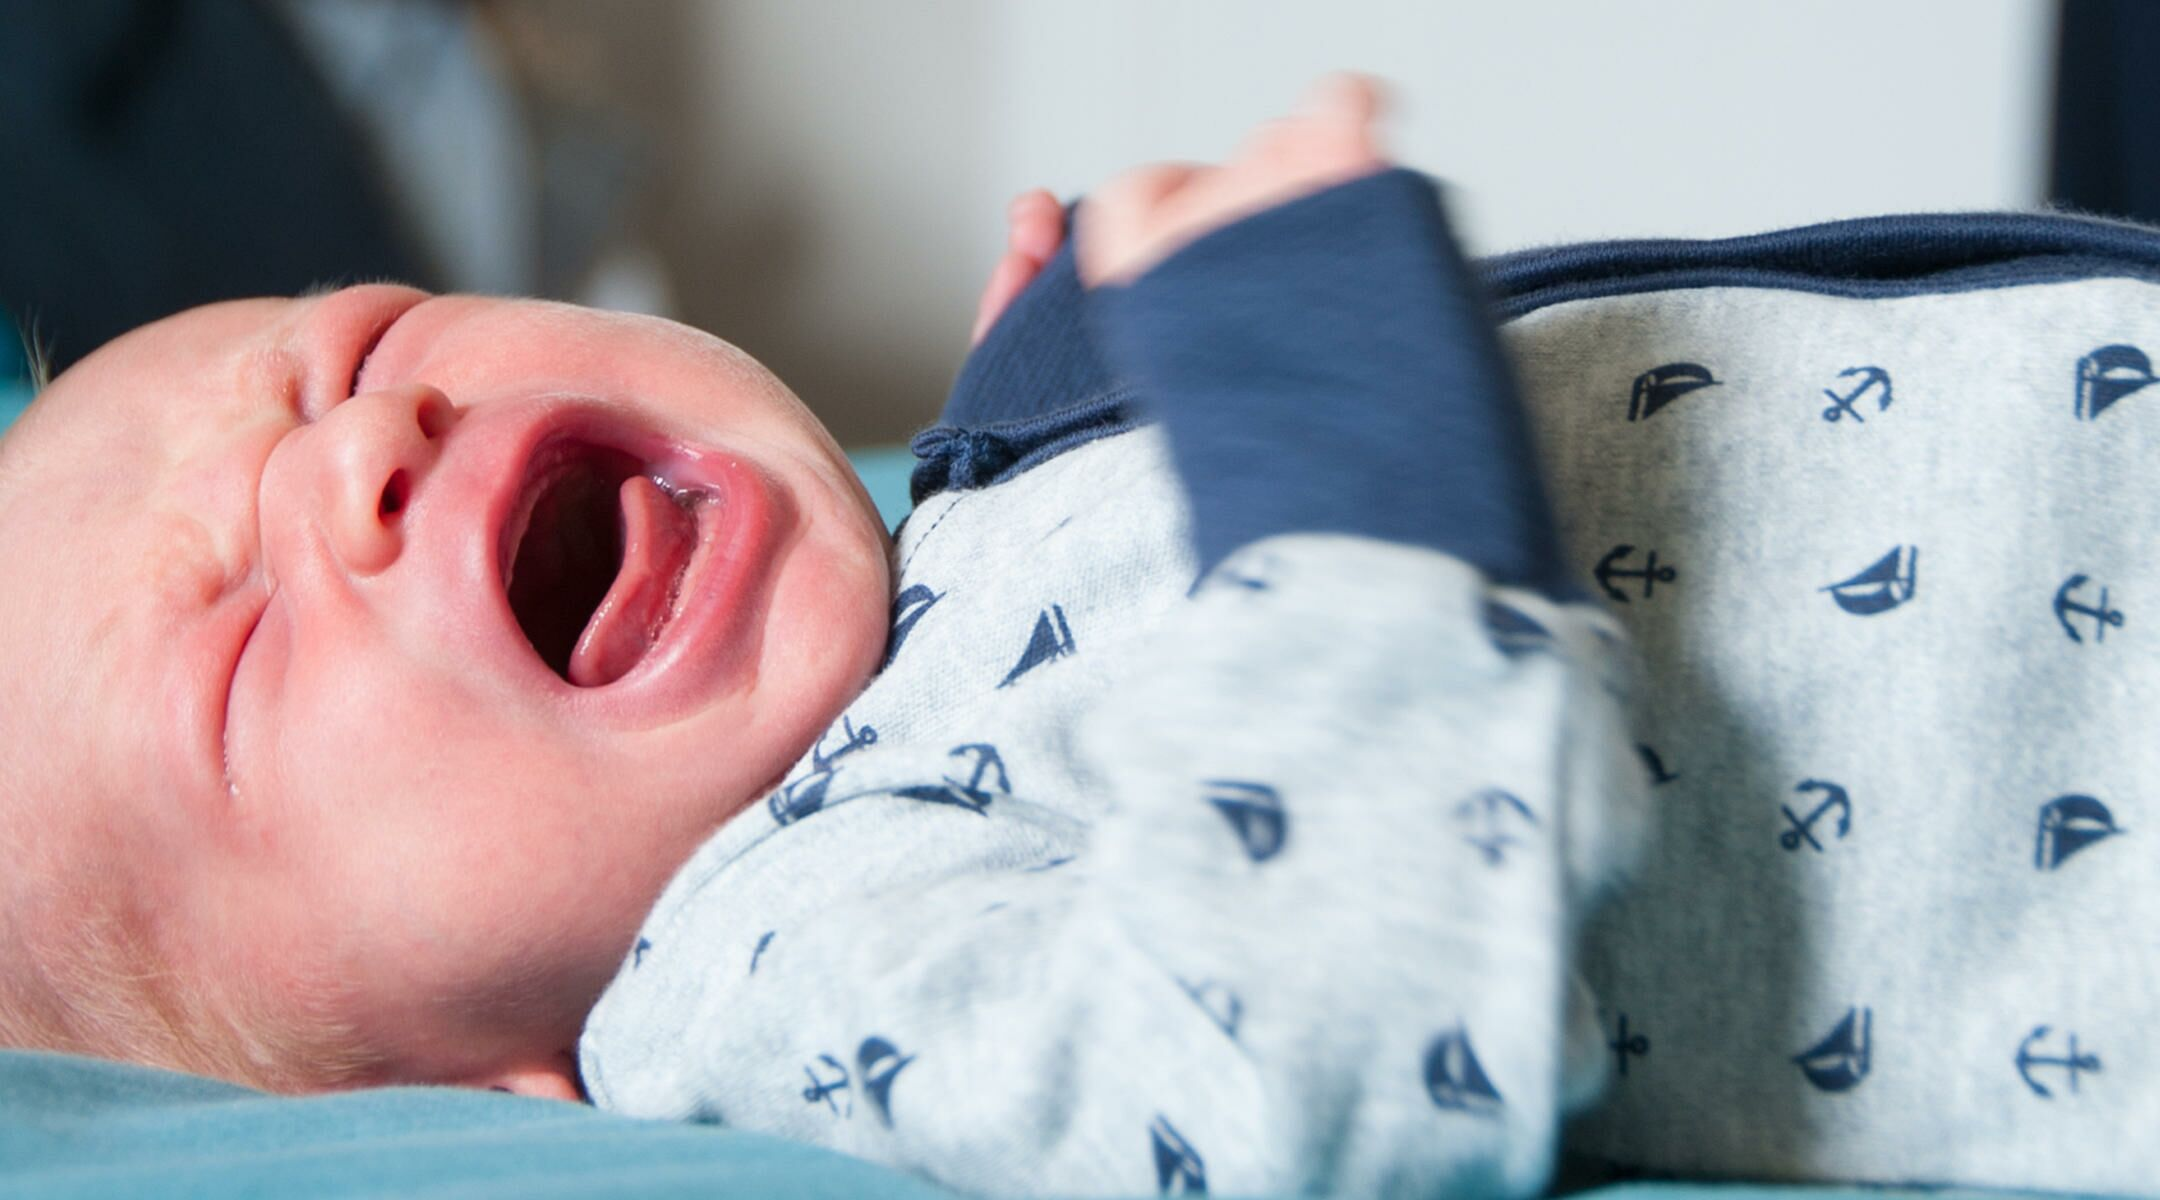 What Is Colic In Babies